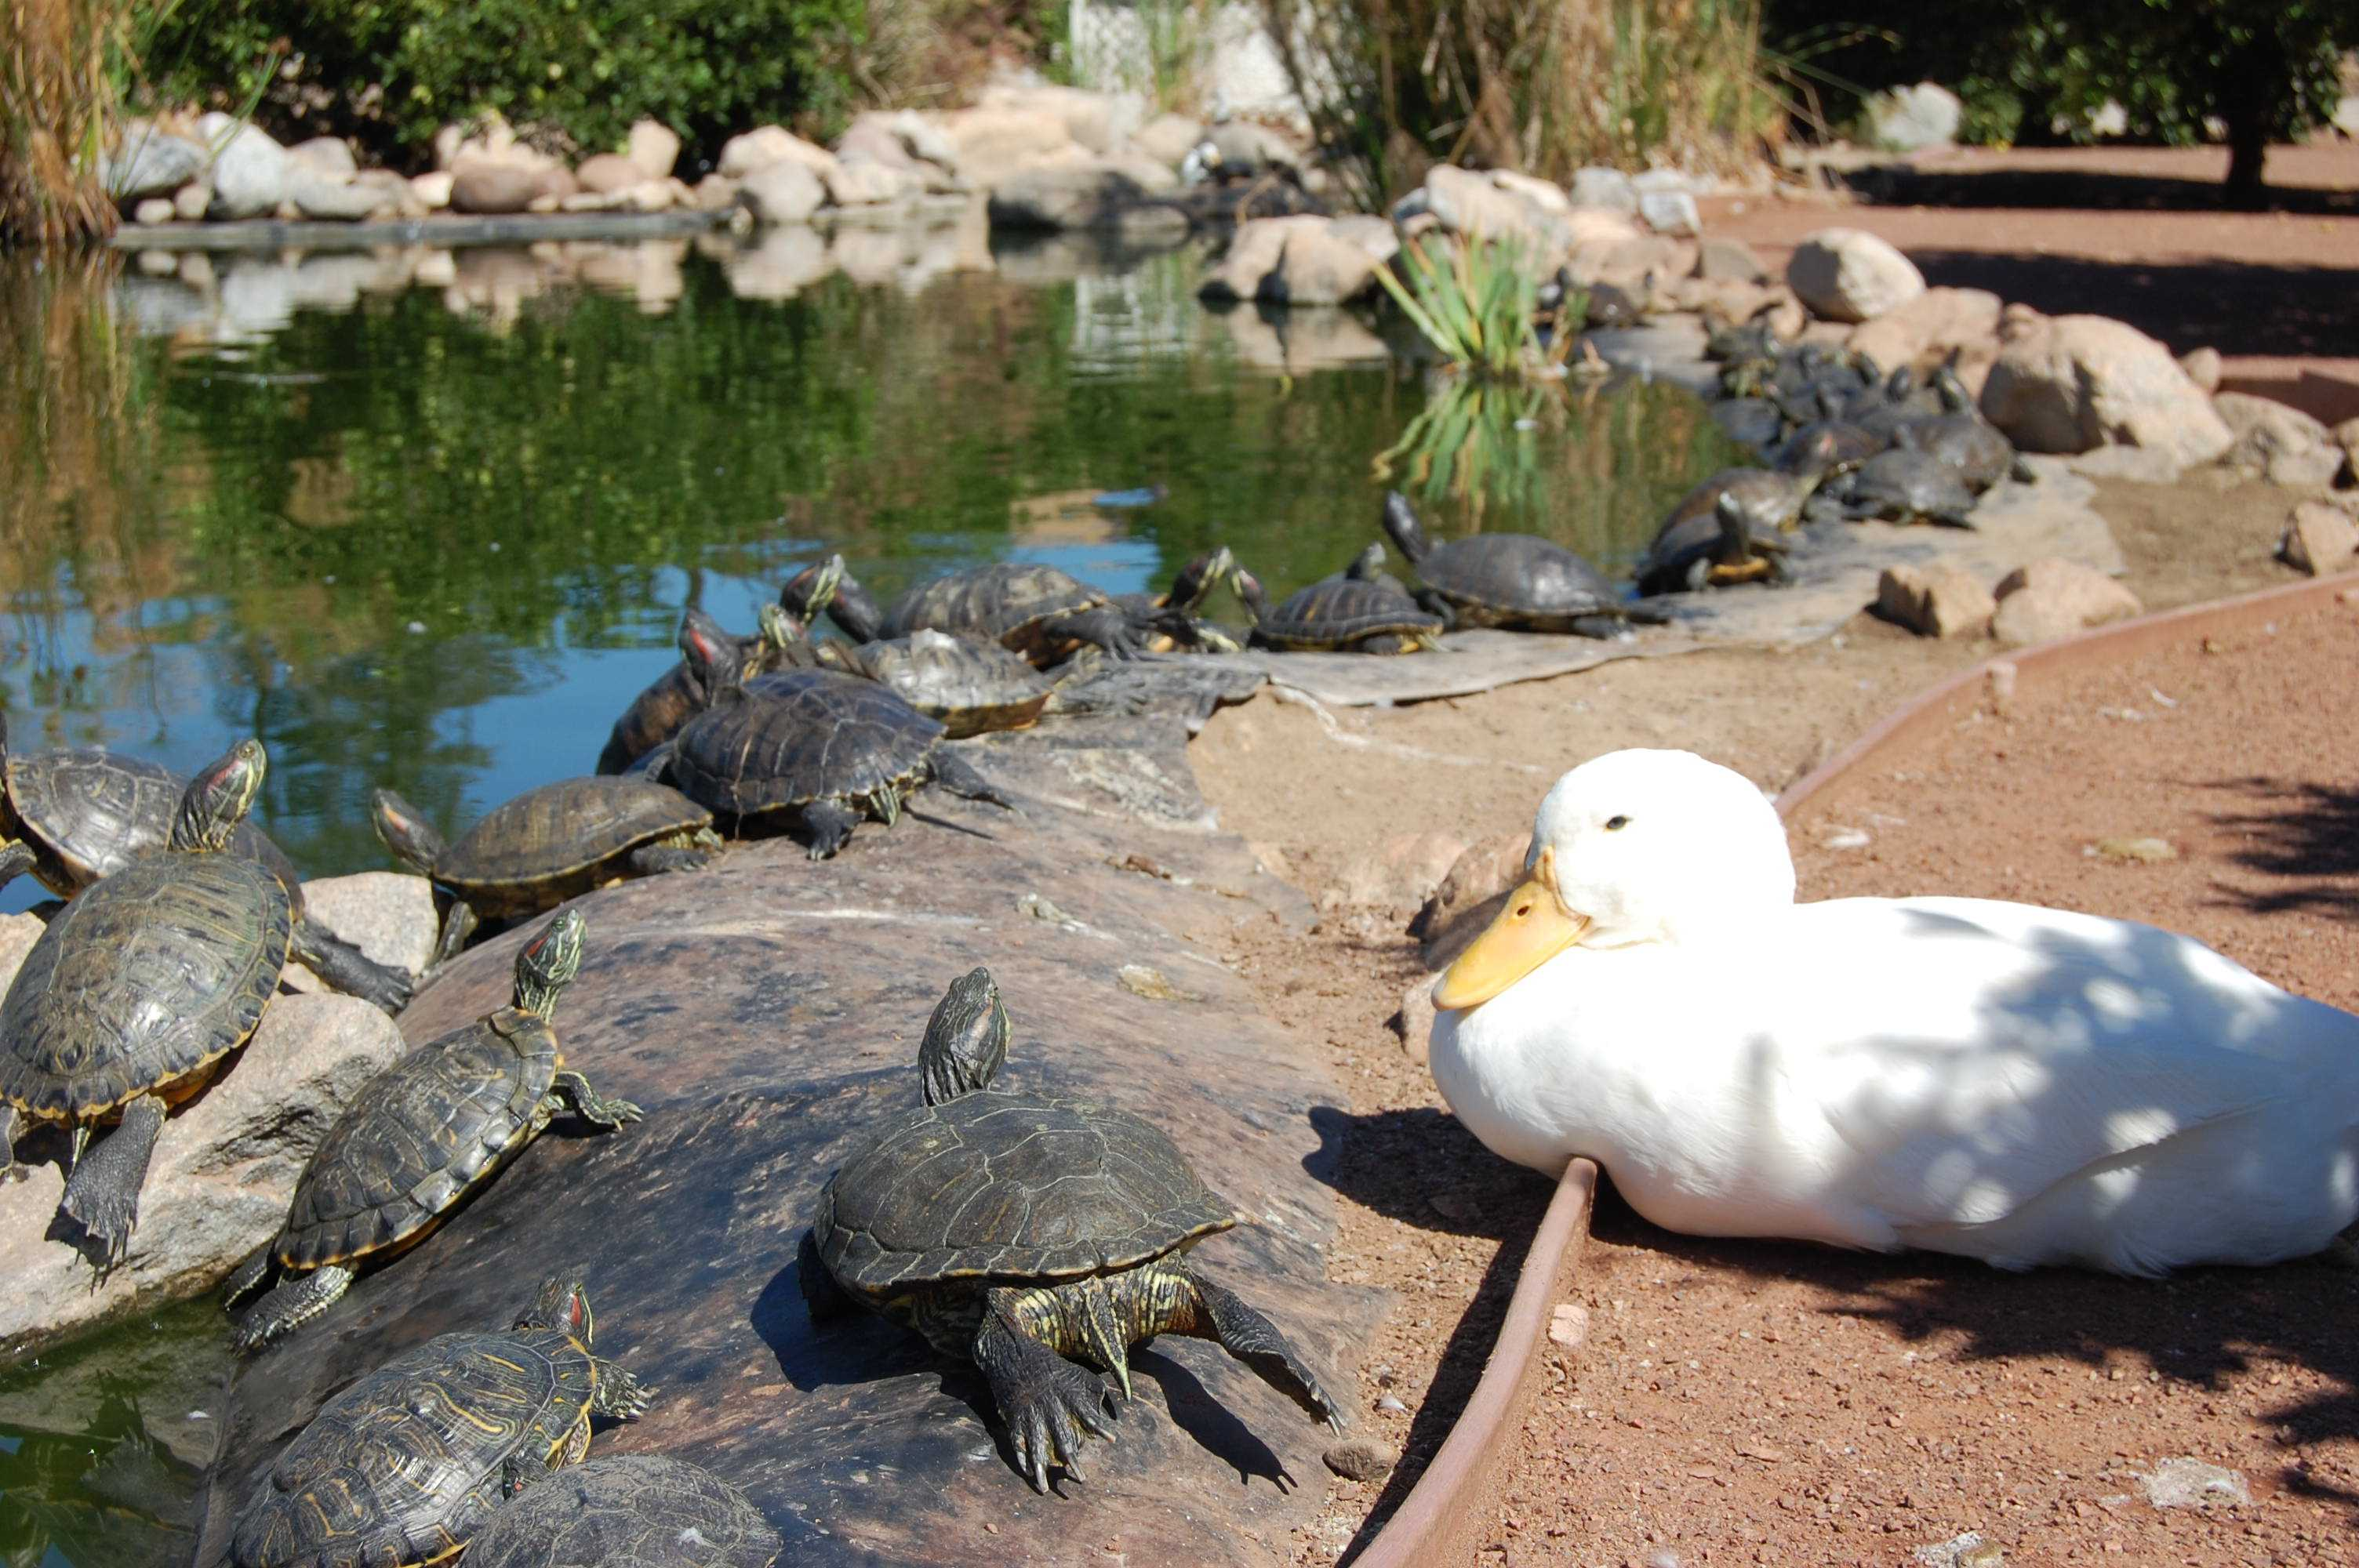 CSUN's pond holds a capacity to hold about 40-50 turtles. About 400-500 red slider turtles live in CSUN's pond according to biology students.